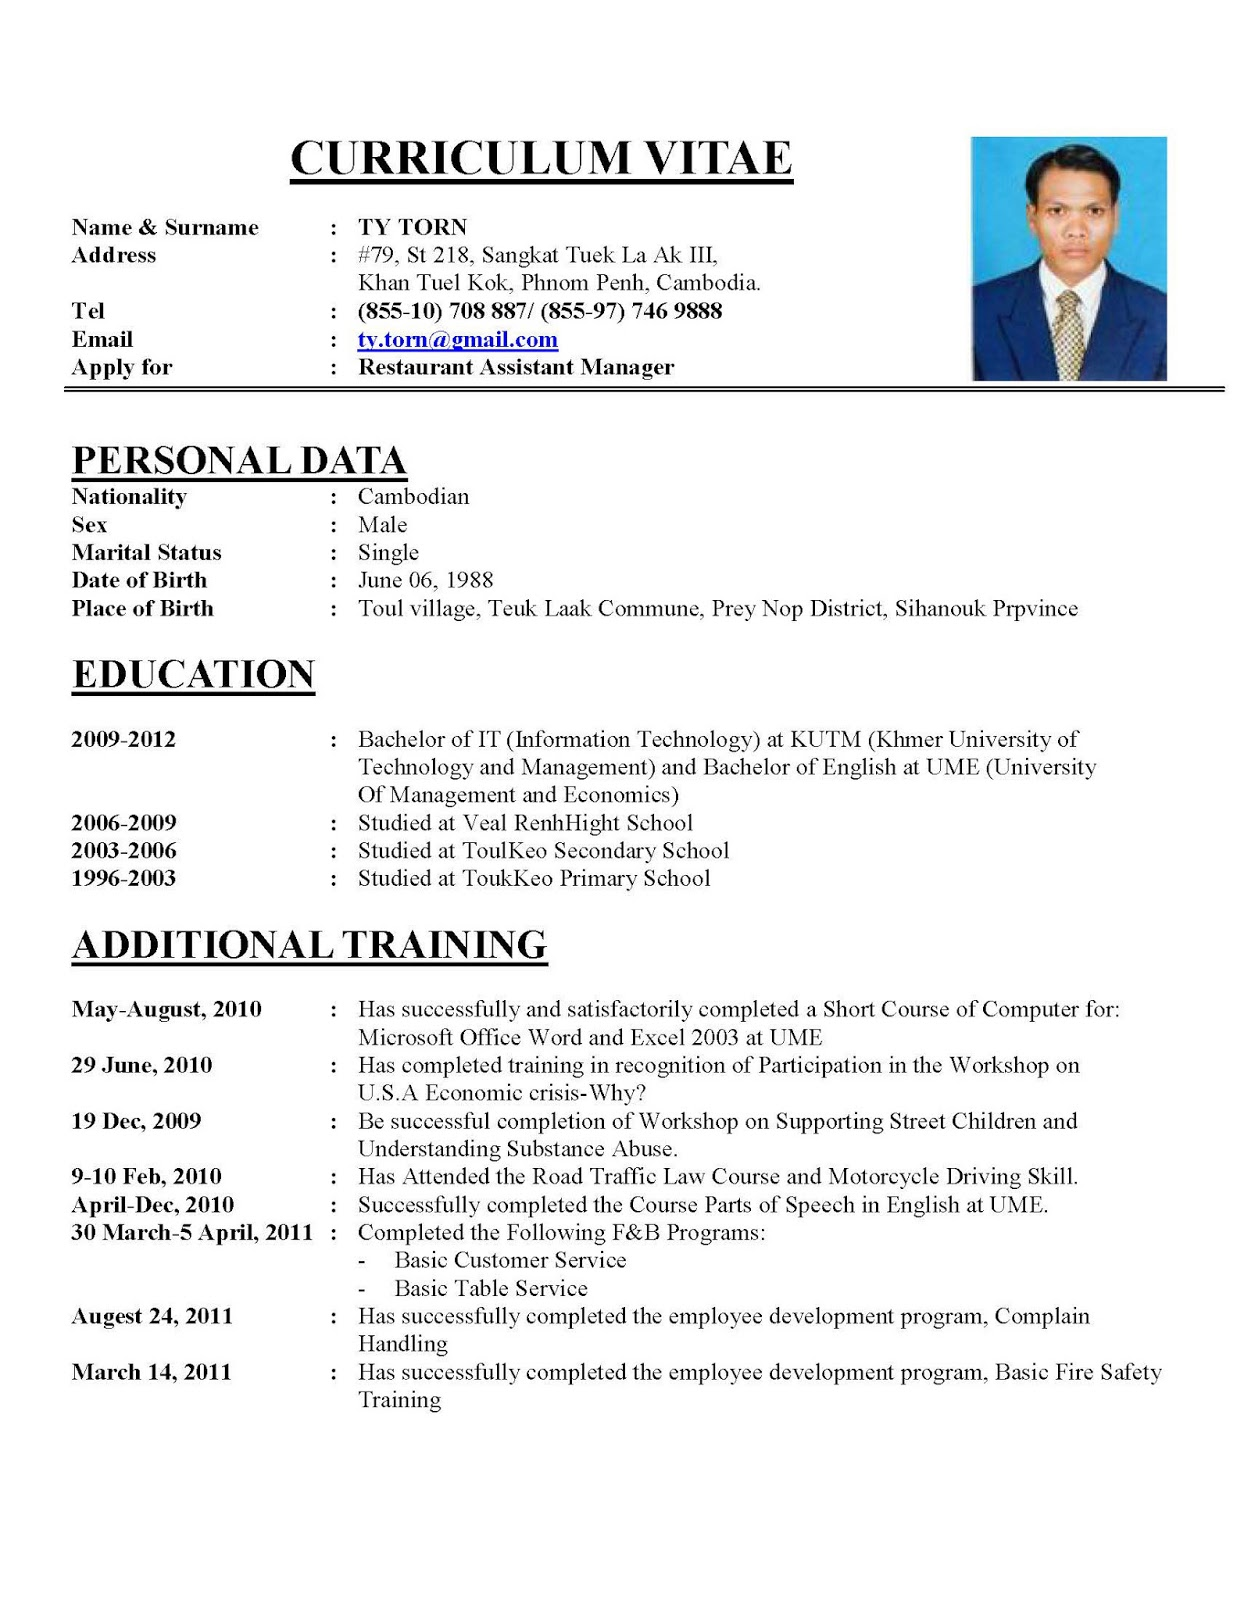 writing a perfect curriculum vitae sample cv. Resume Example. Resume CV Cover Letter